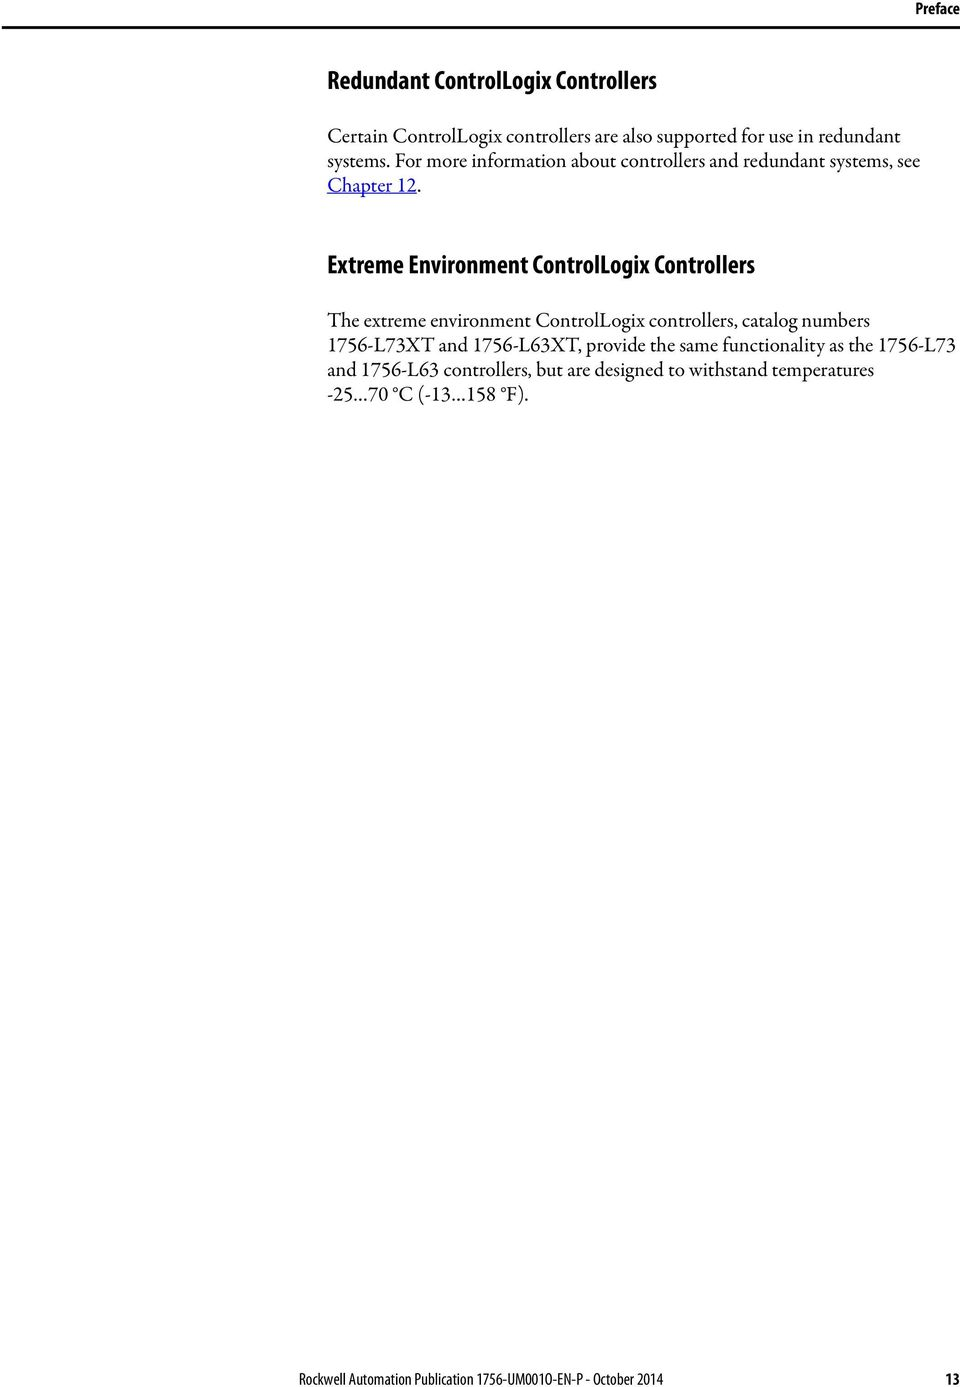 Extreme Environment ControlLogix Controllers The extreme environment ControlLogix controllers, catalog numbers 1756-L73XT and